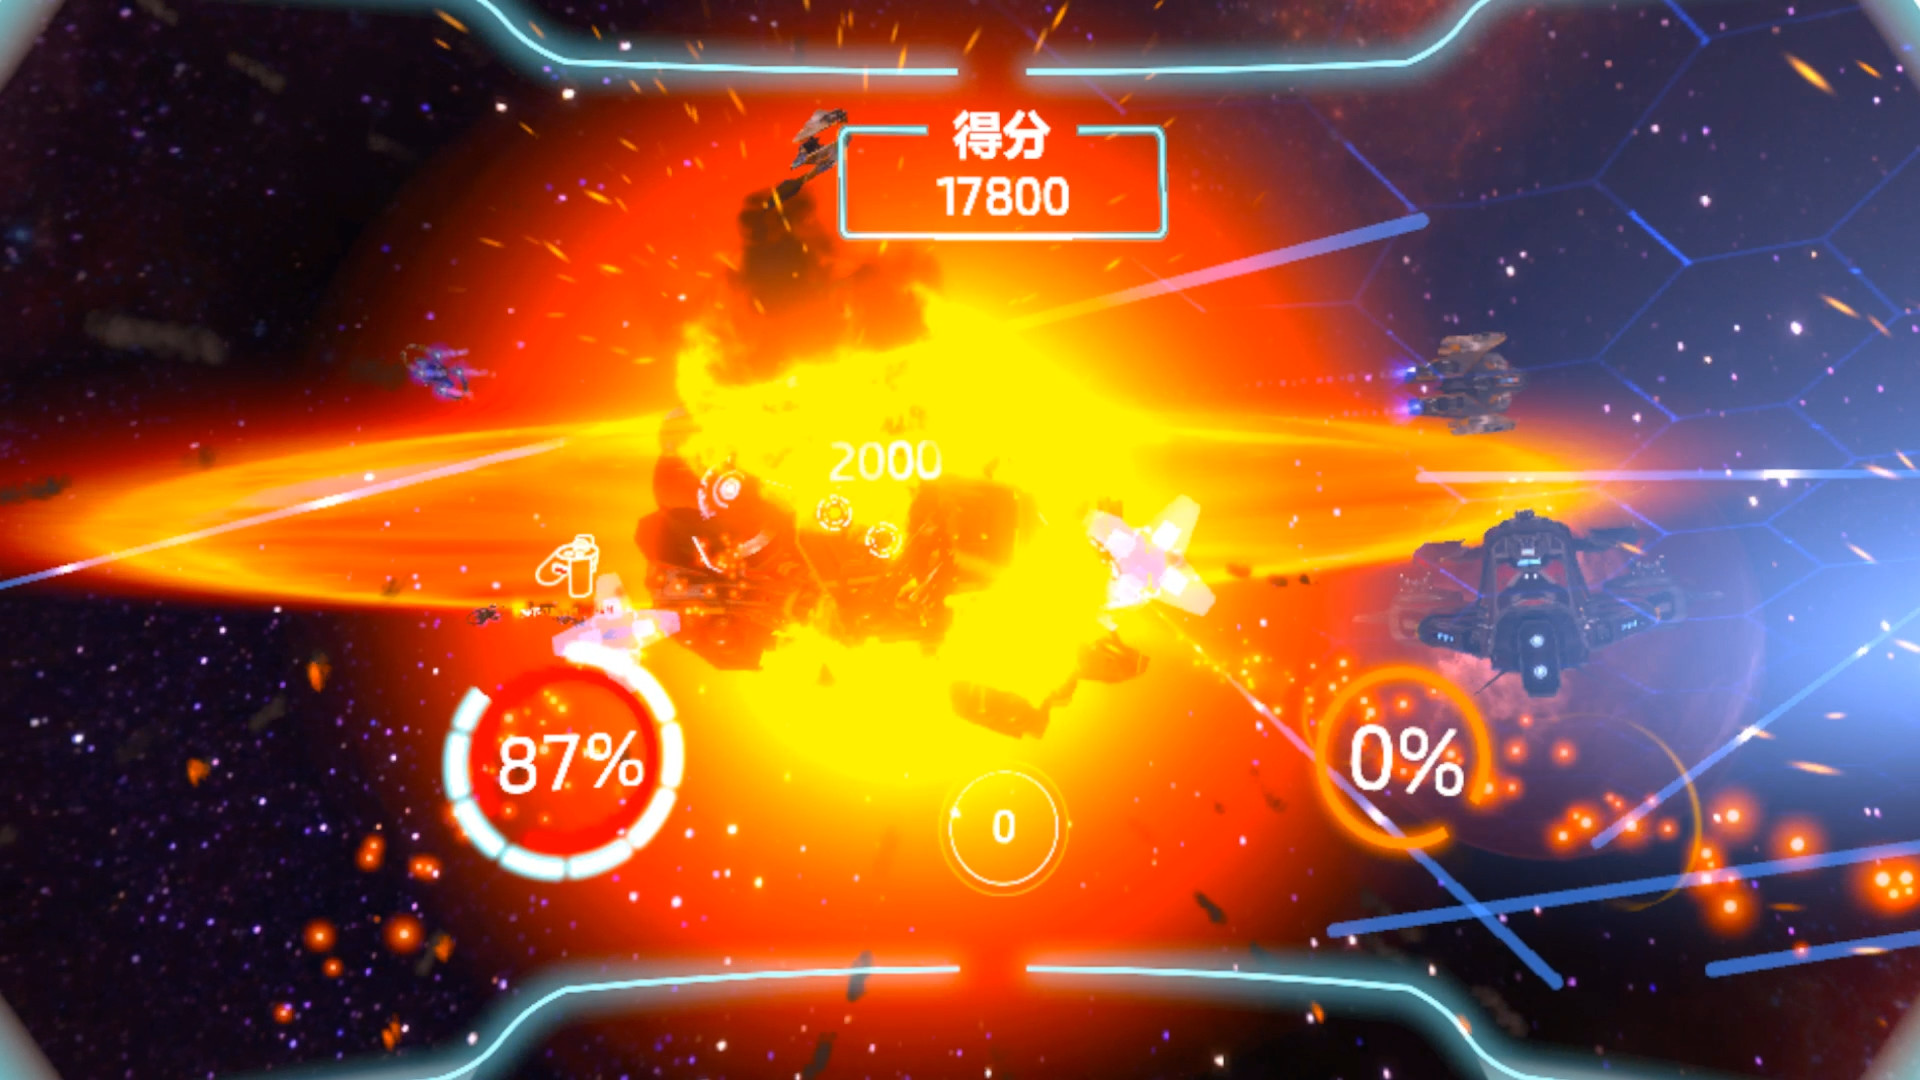 Space Turret Gunner 宇宙大炮手 screenshot